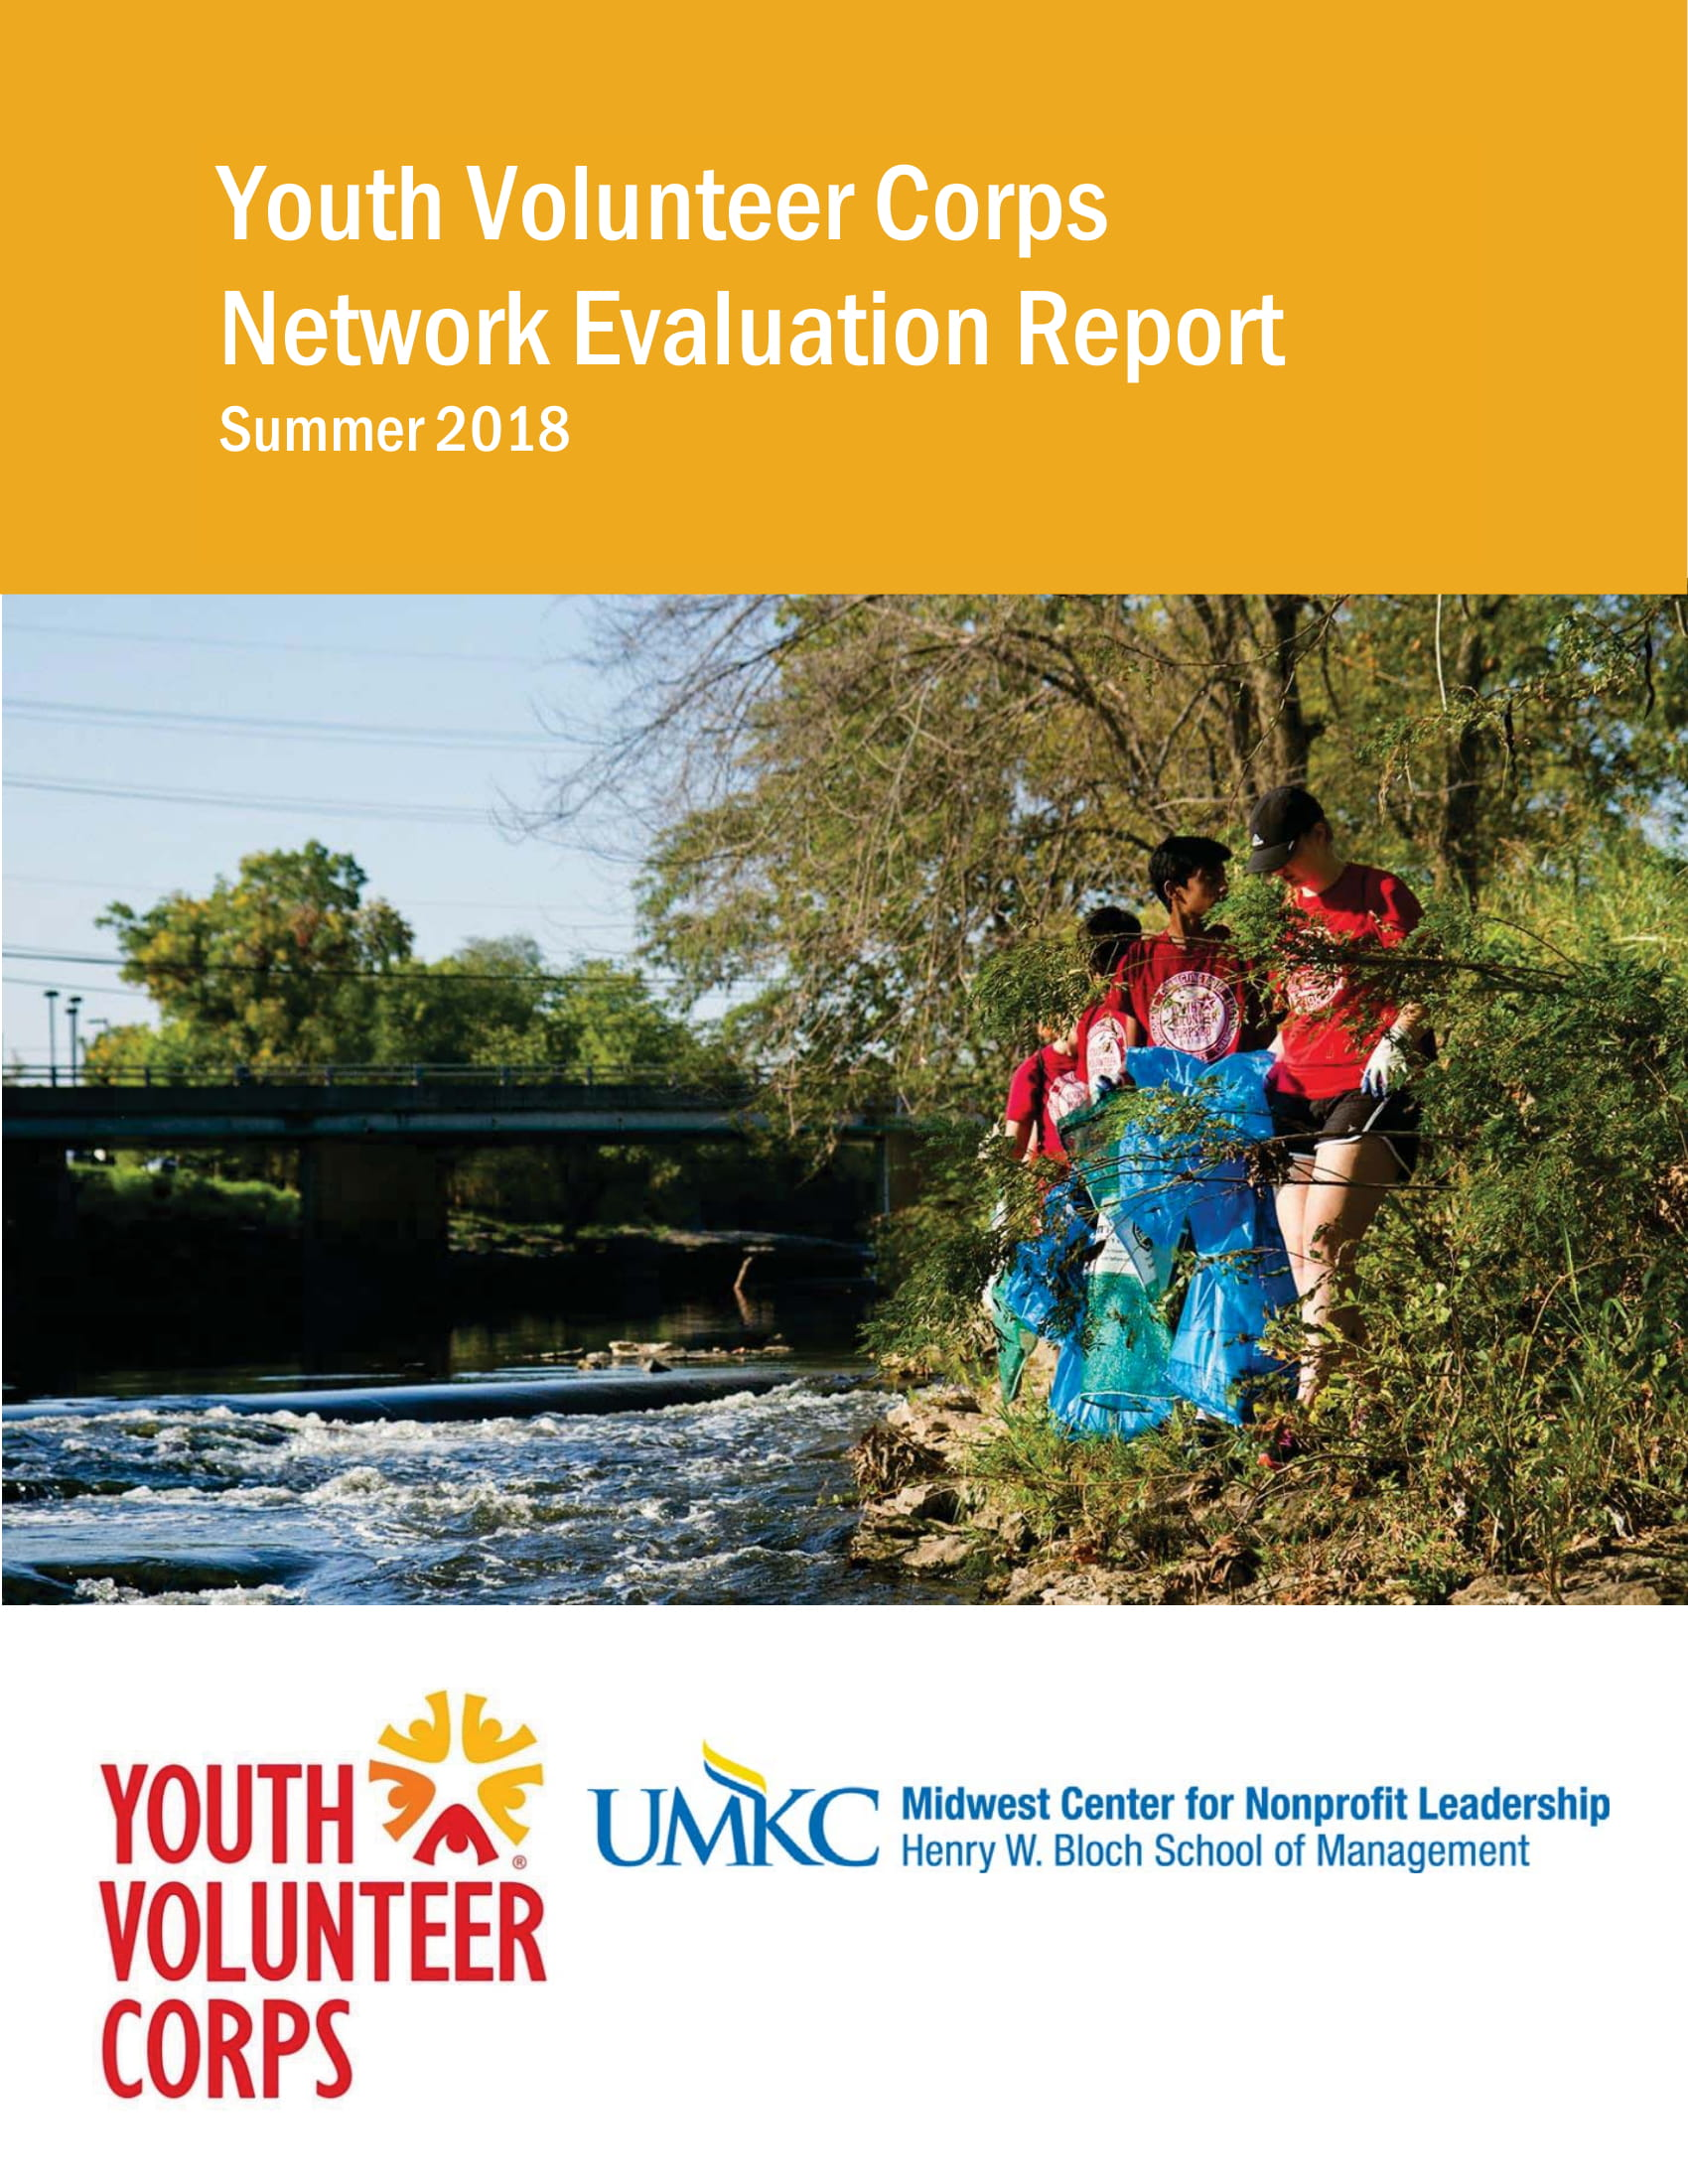 Link to Youth Volunteer Corps Network Evaluation